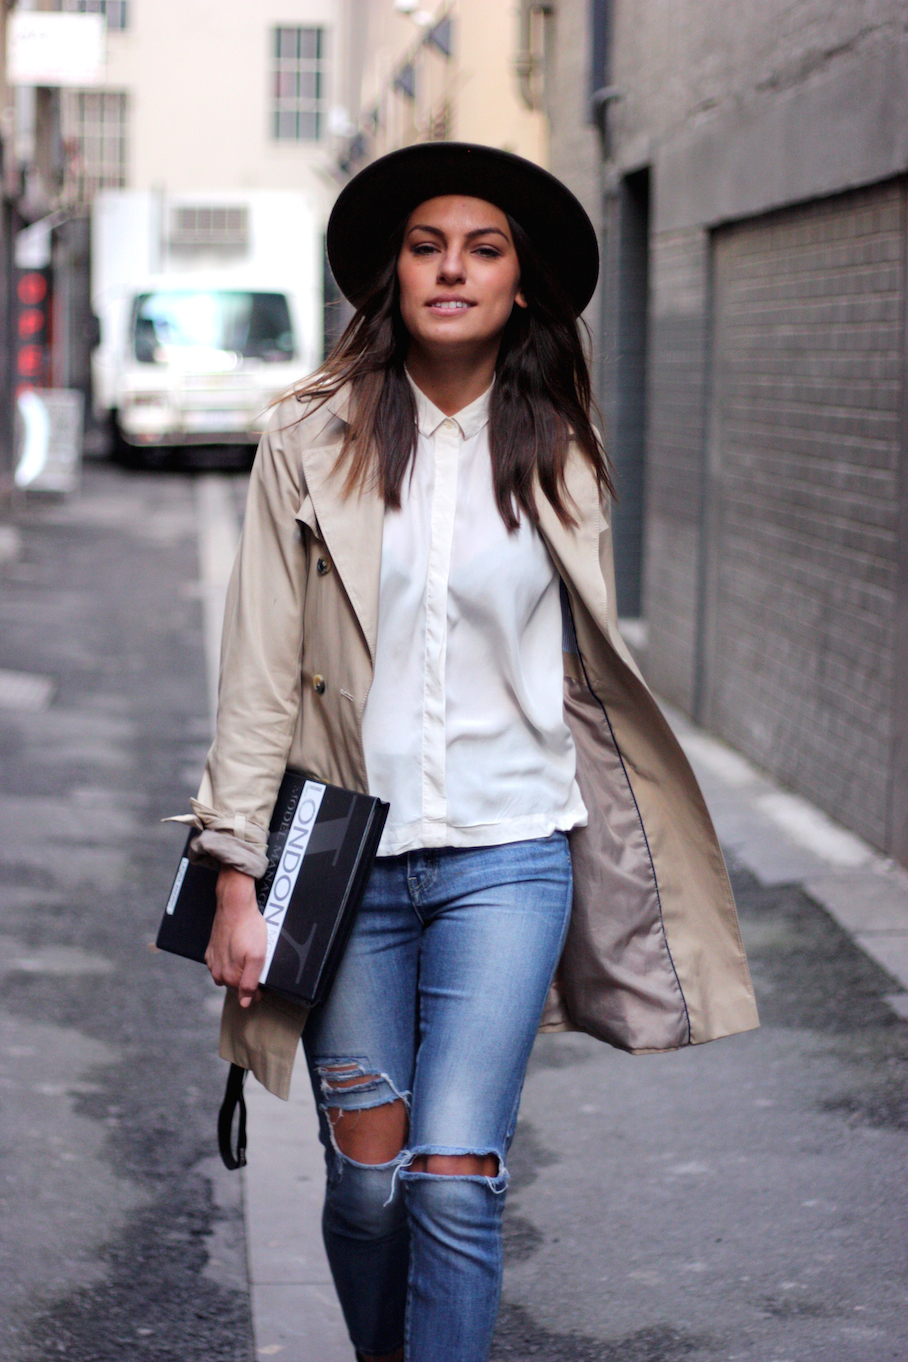 """Vic: Laura Andric, Carson Place, Melbourne. """"I wear classic looks and styles that don't date. Neutral Tones.""""   <a href=""""http://www.marythamphotography.weebly.com/"""" target=""""_blank""""> Photo: Mary Tham </a>"""